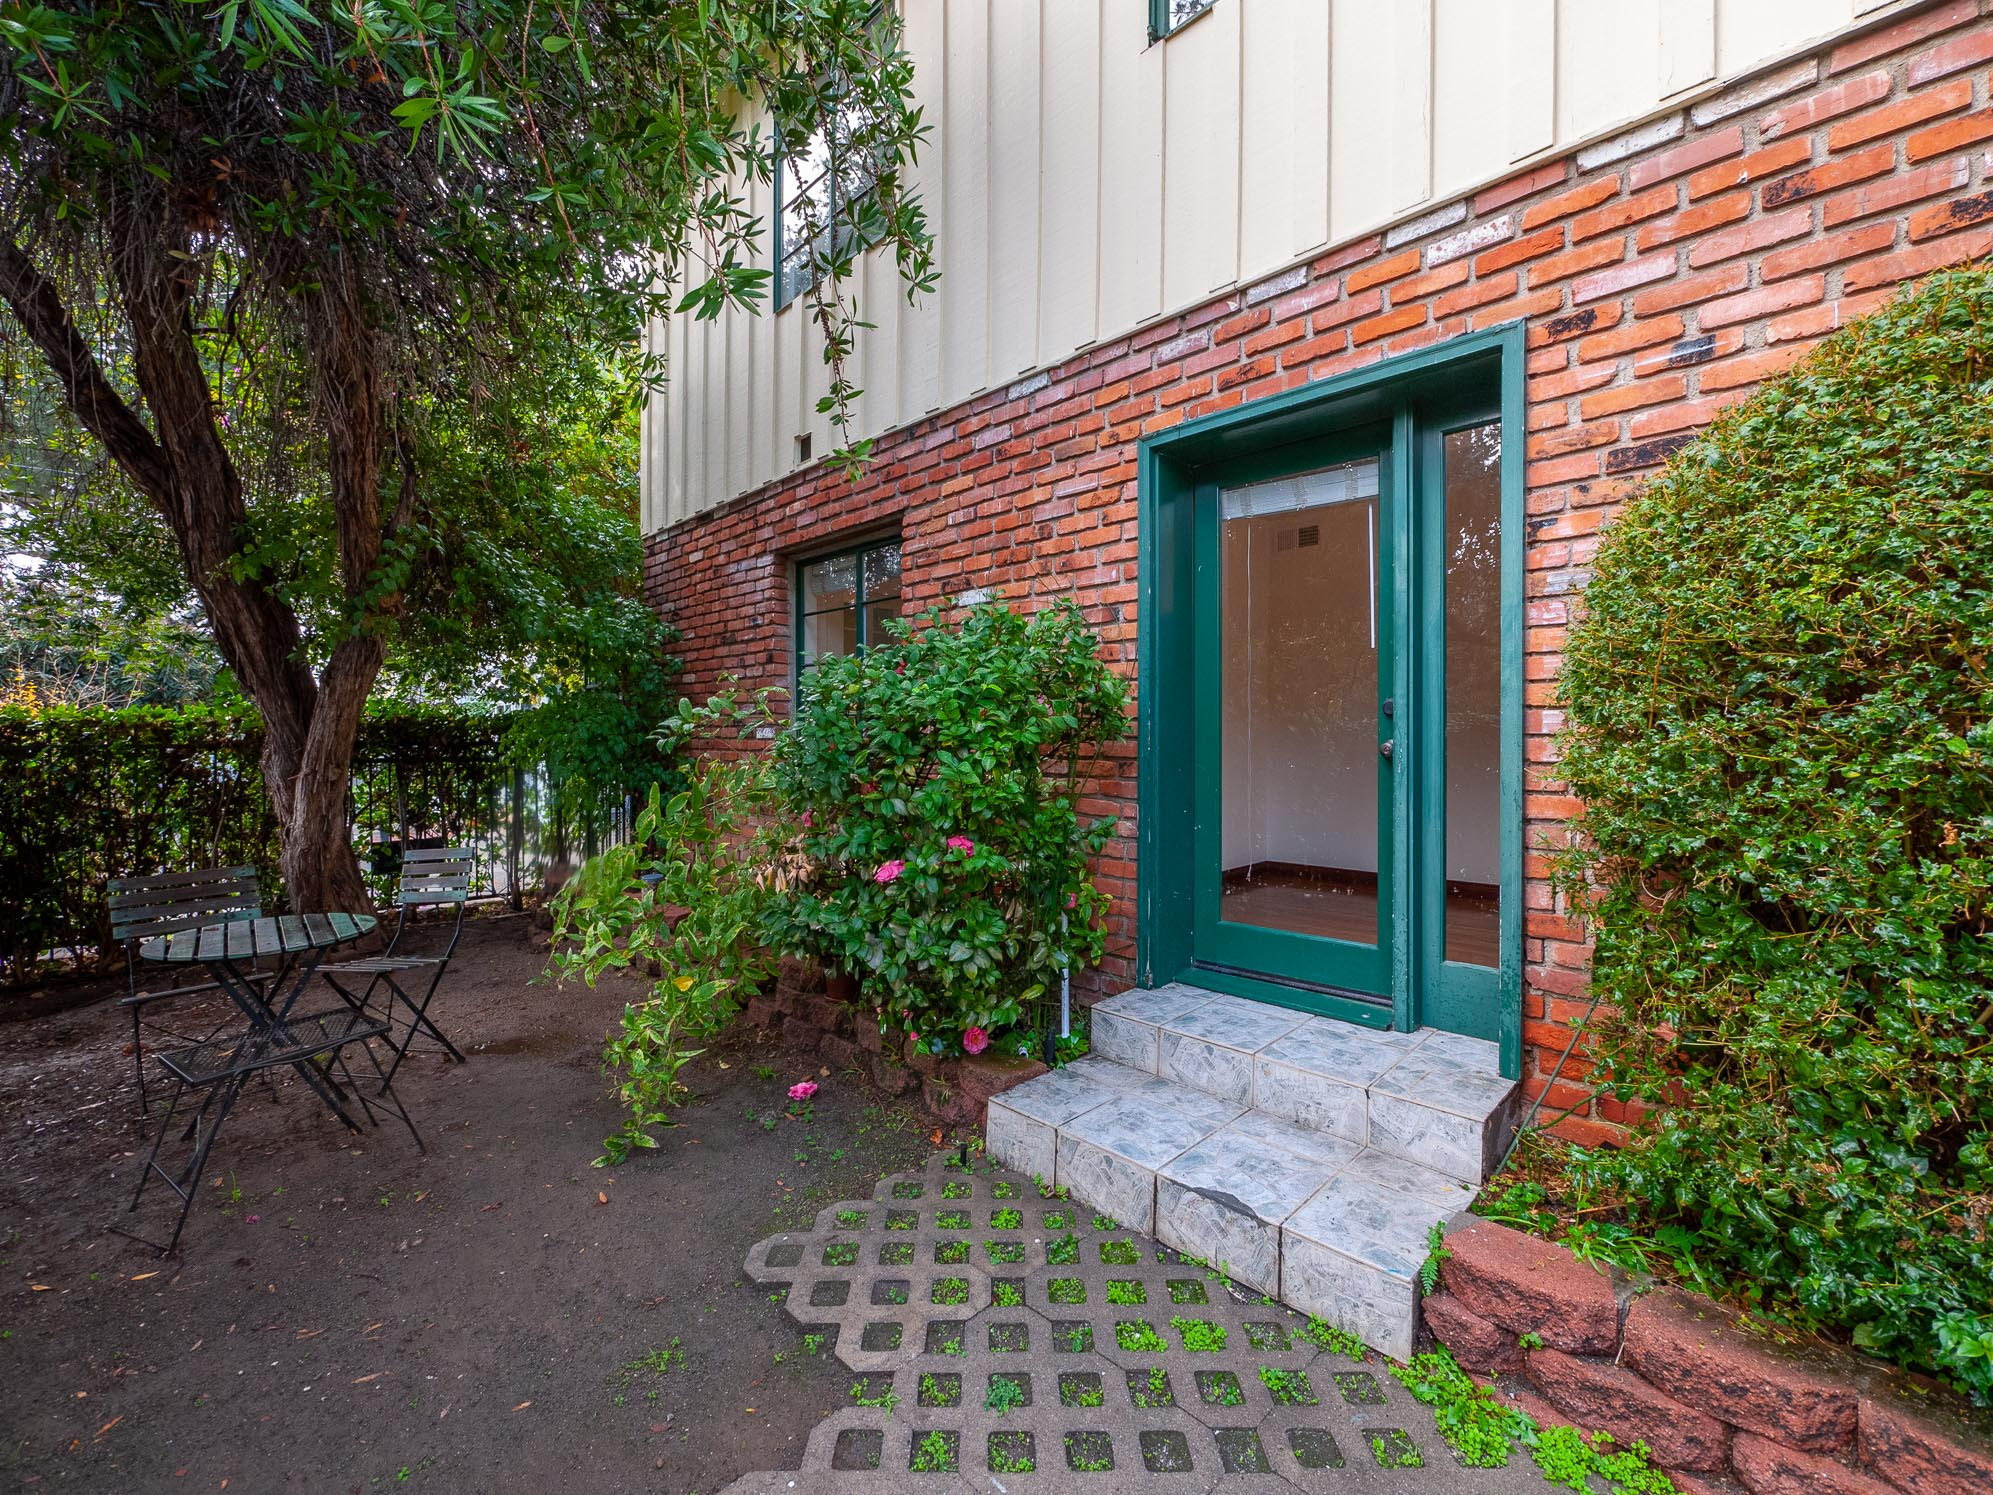 Modern Storybook Big Bright and Happy! Too Good 2B-Coveted Central Tree-Line Los Feliz Locale-Central A/H-WD-ToDieFor Kitchen